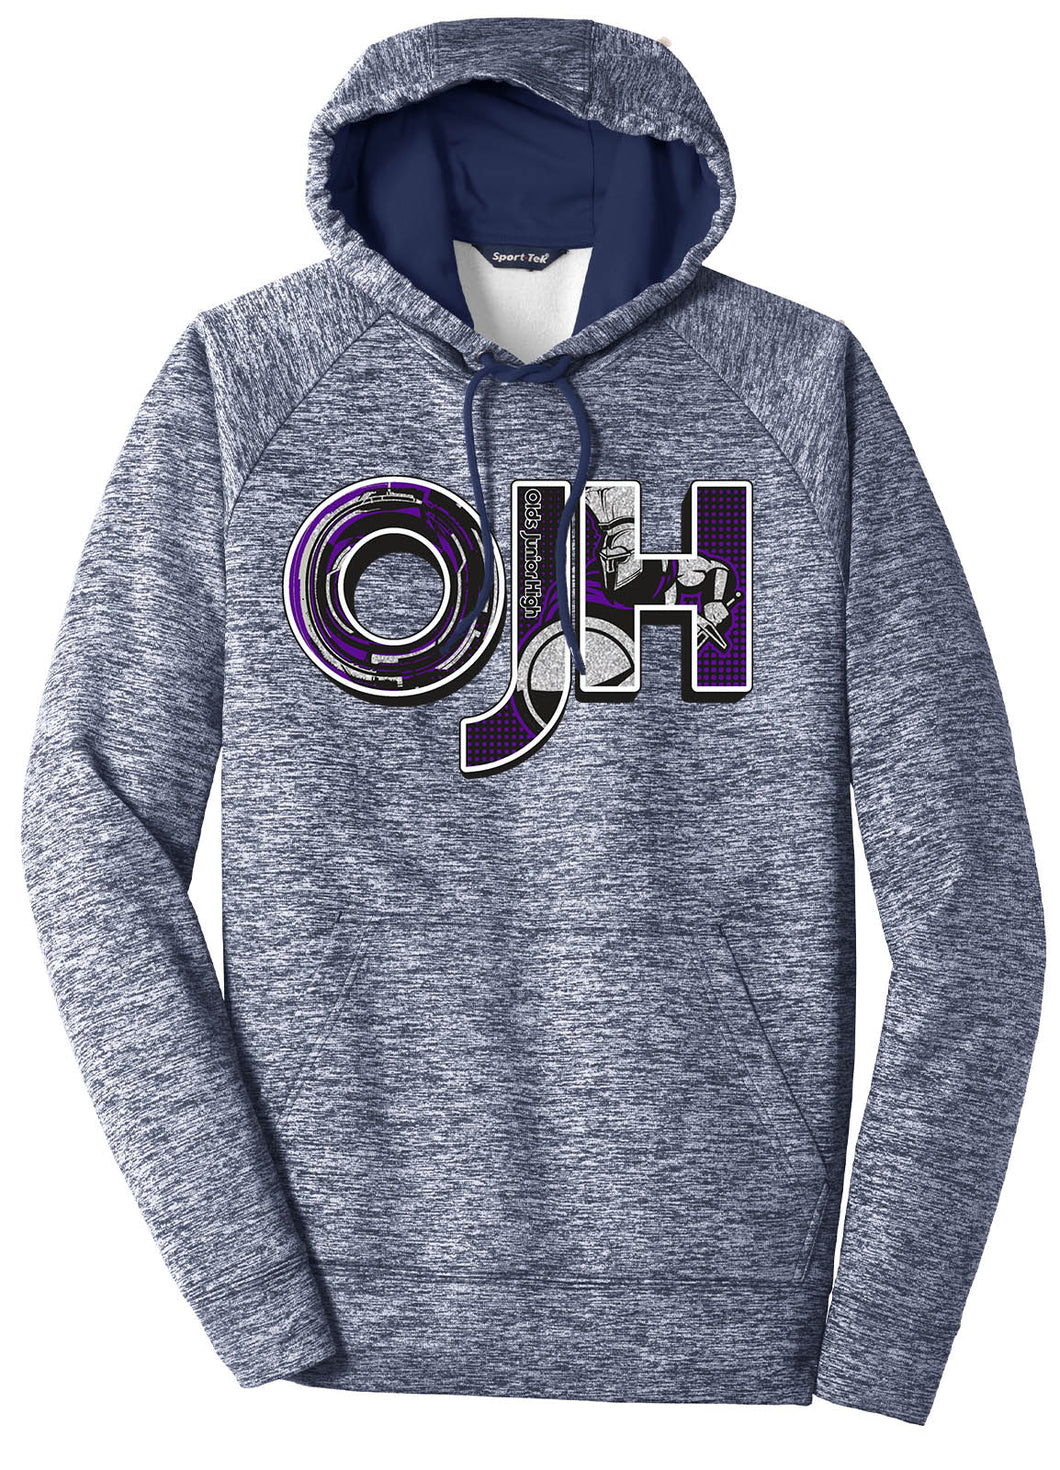 Standard or Ladies Electric Heather Hoodie - Olds Jr High